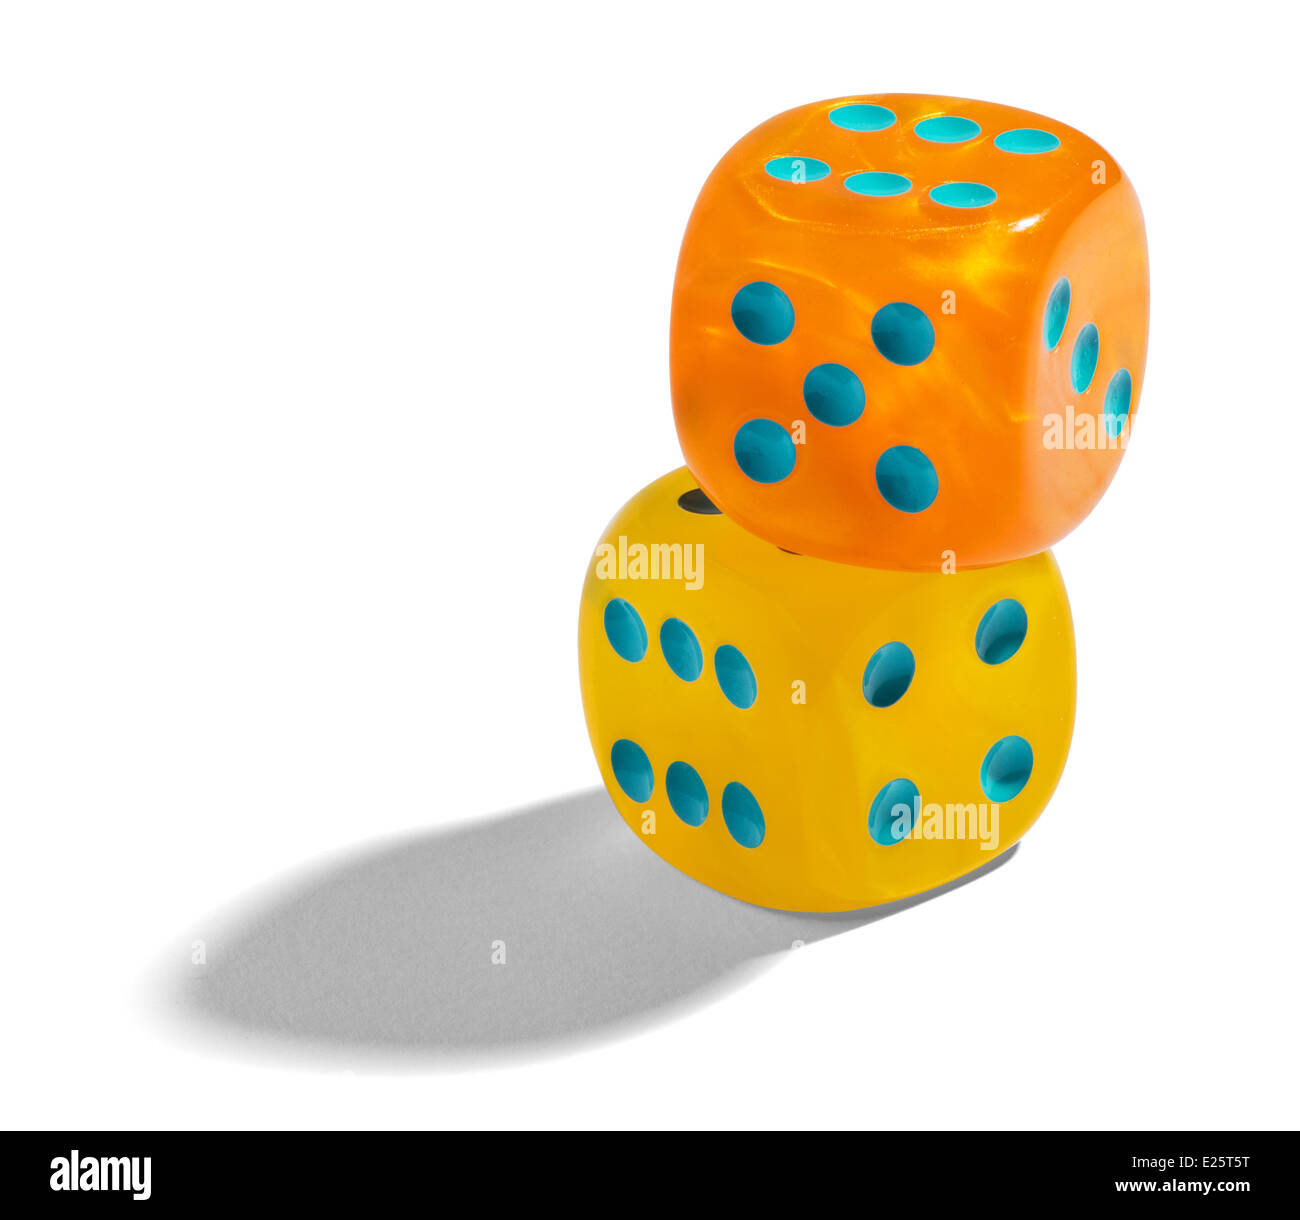 Yellow and orange dice - Stock Image